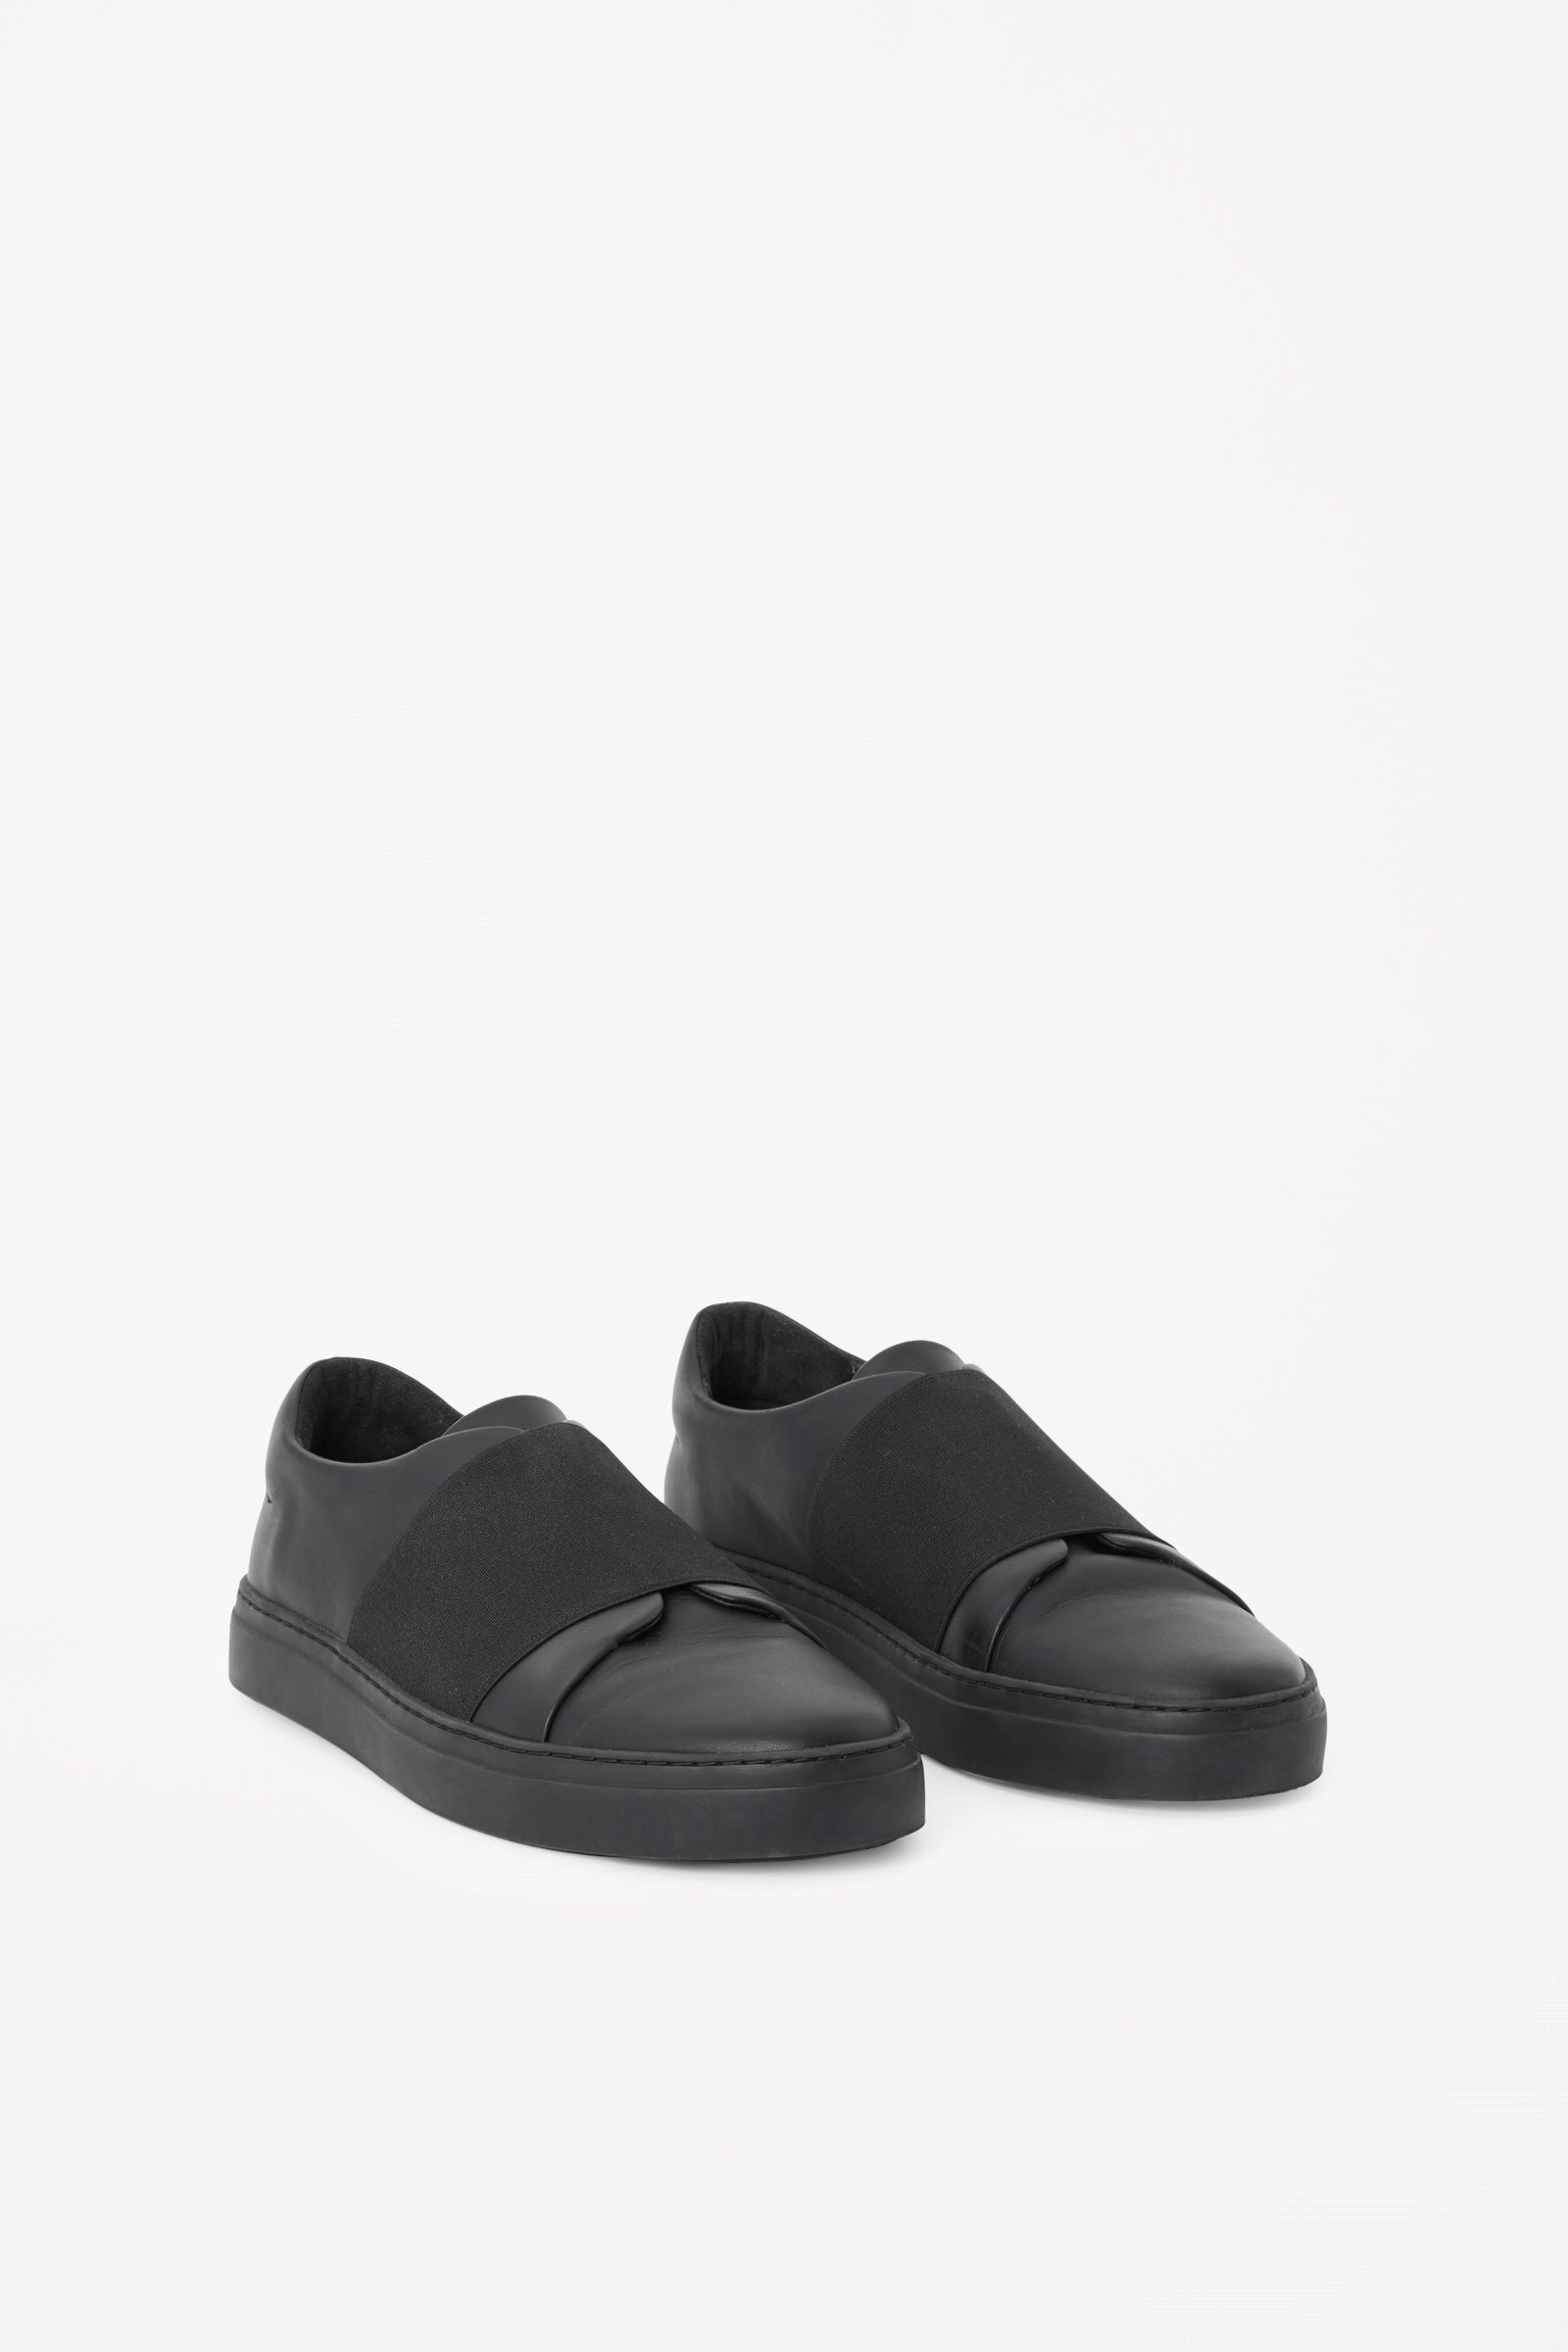 9ab4ed7a18c5d COS - wrap-over leather sneakers in Black | things | Shoes, Leather ...